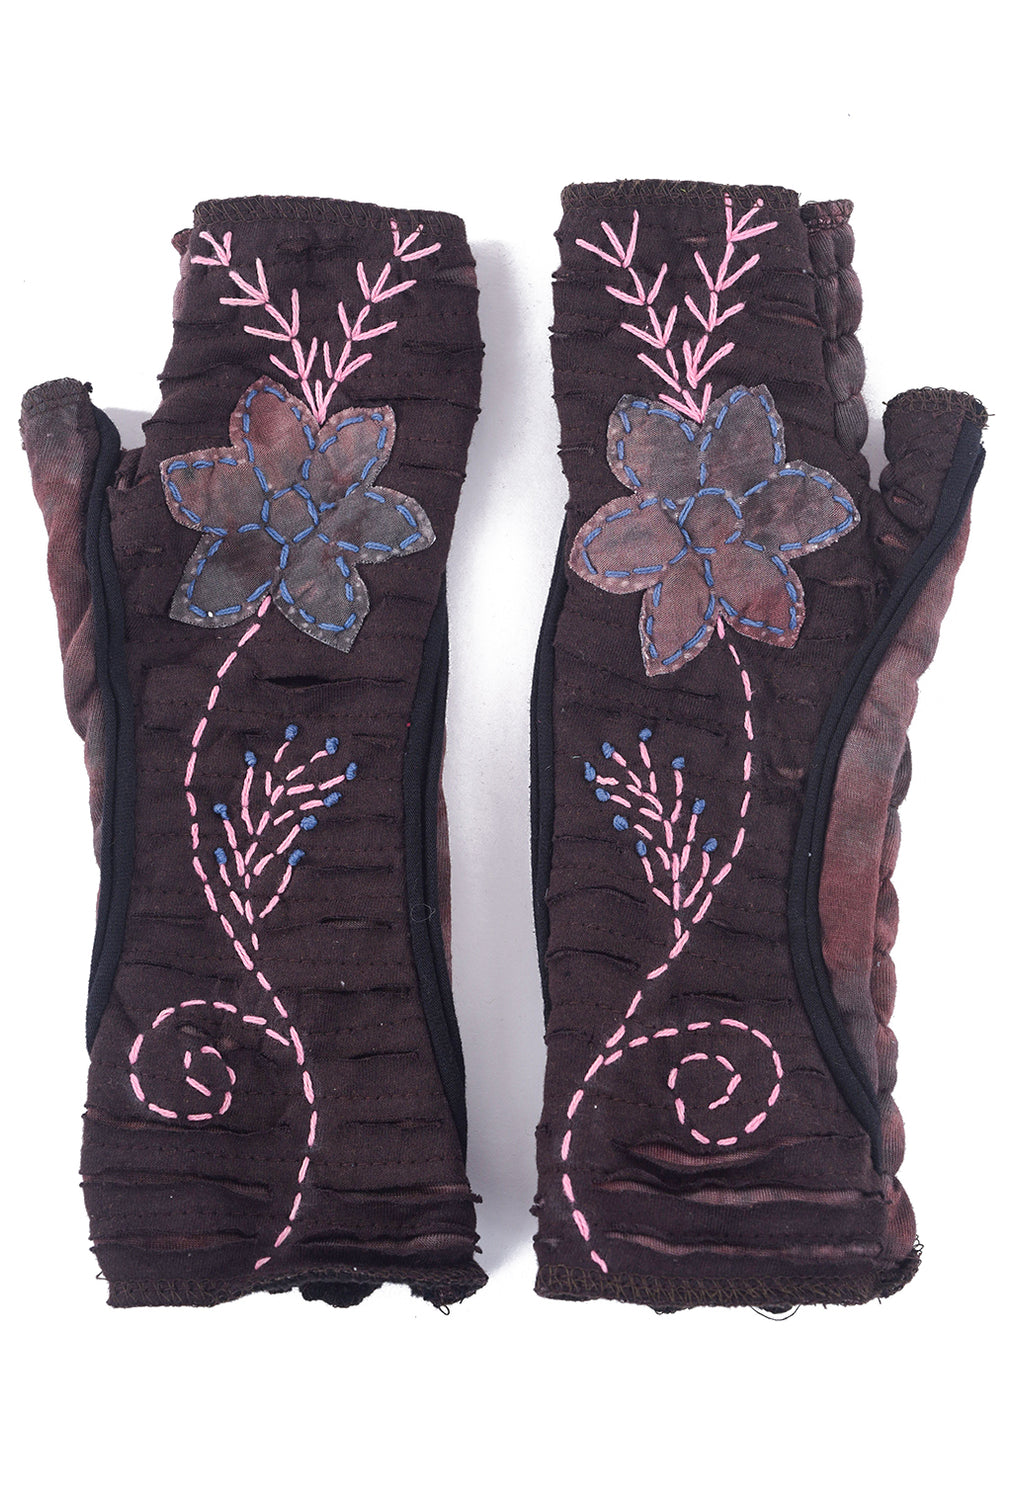 Windhorse Designs Embroidered Fleece Handwarmers, Plum Brown One Size Plum